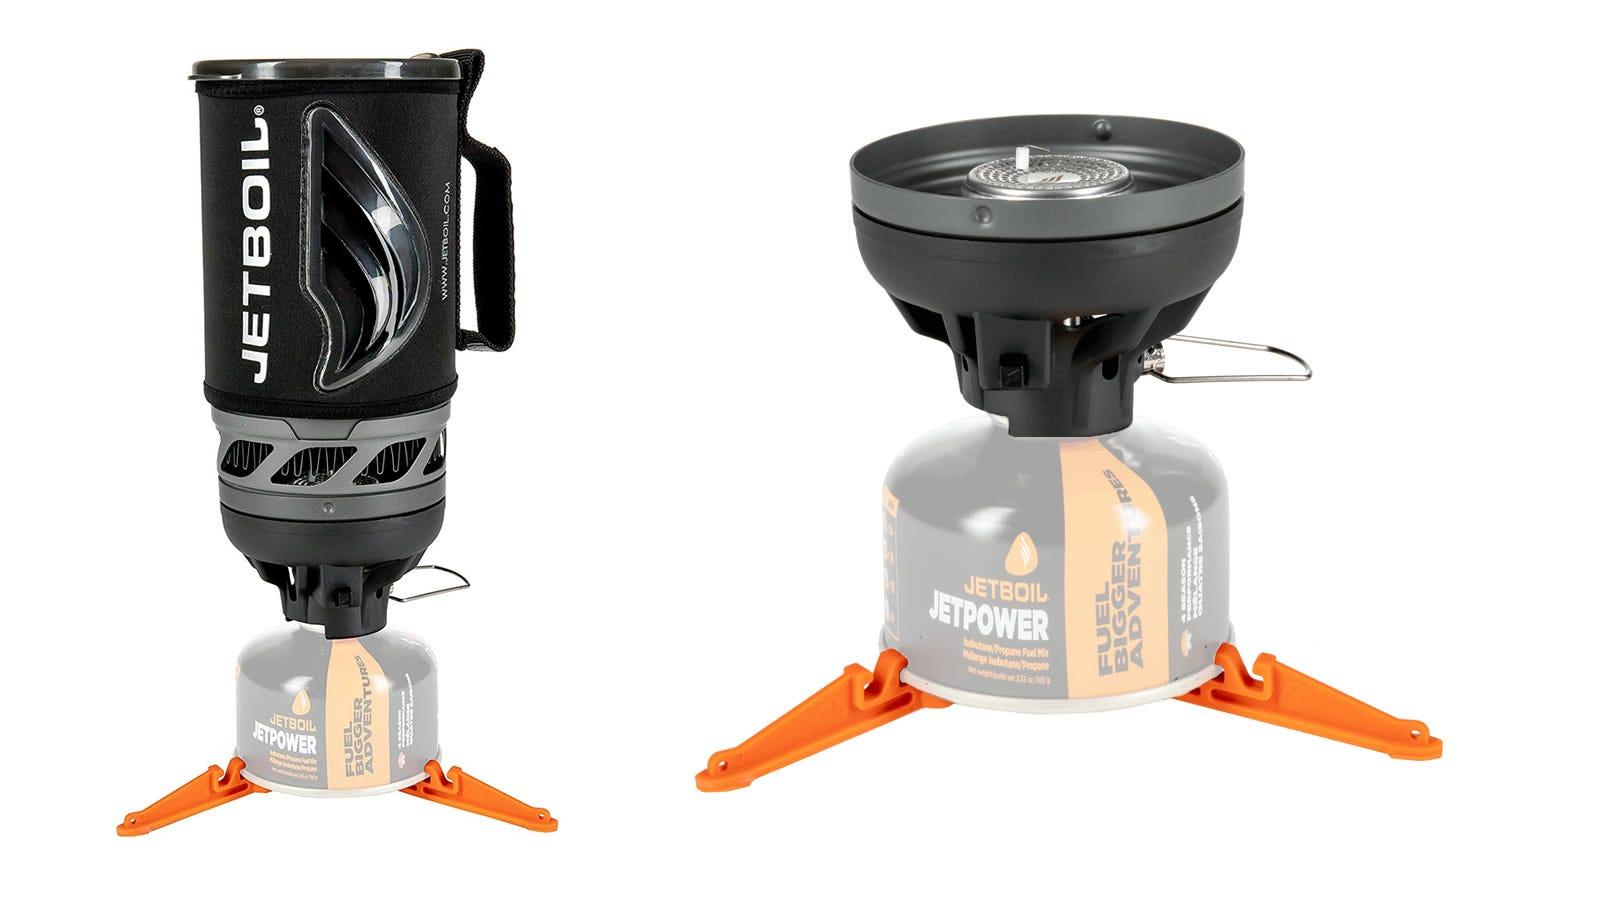 Jetboil Flash integrated camp stove